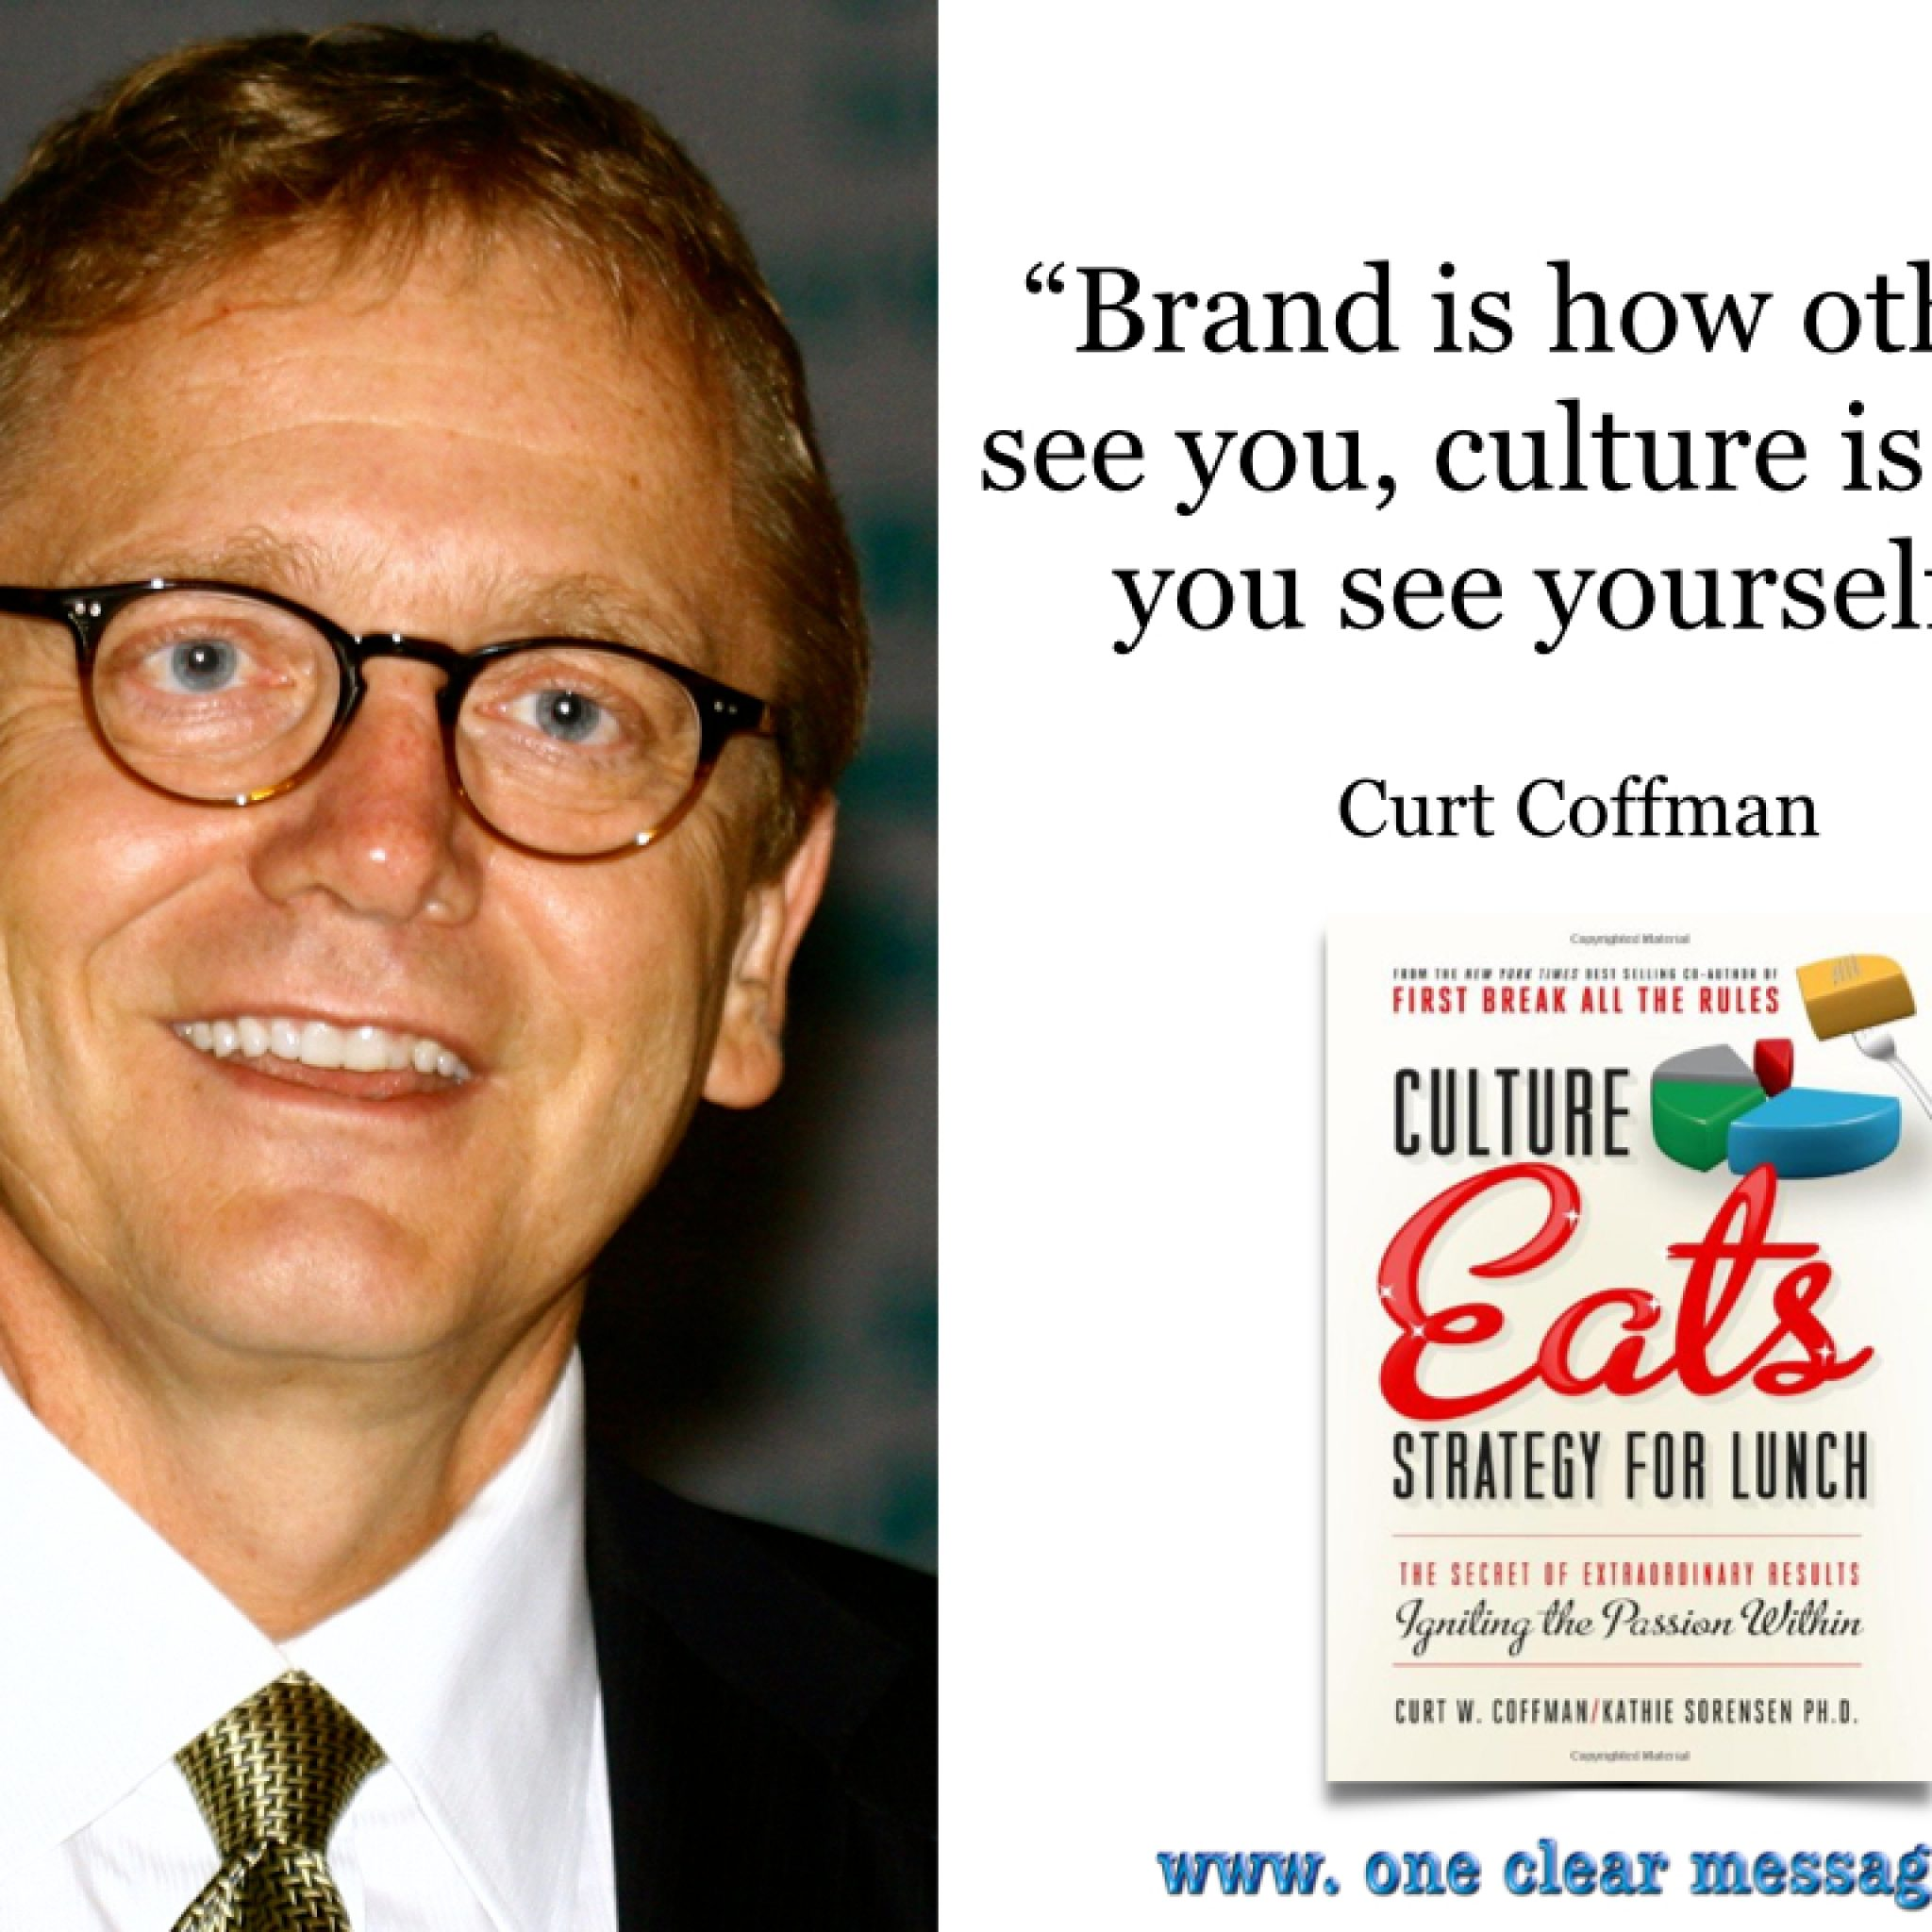 Brand is how others see you, culture is how you see yourself